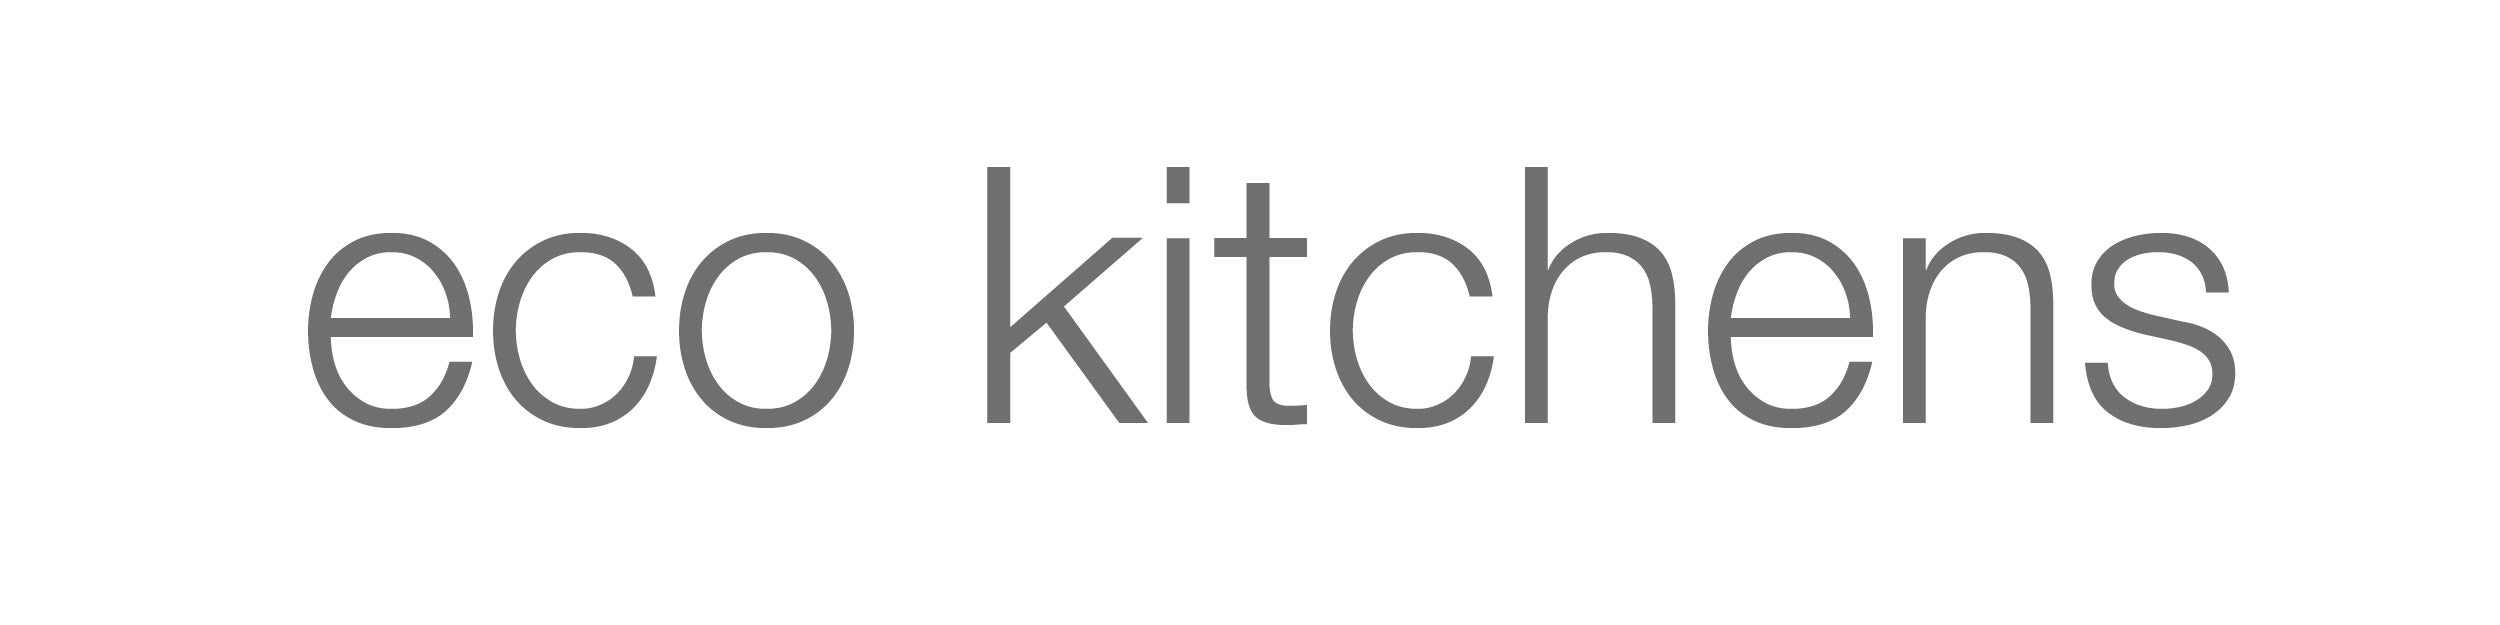 eco kitchens logo